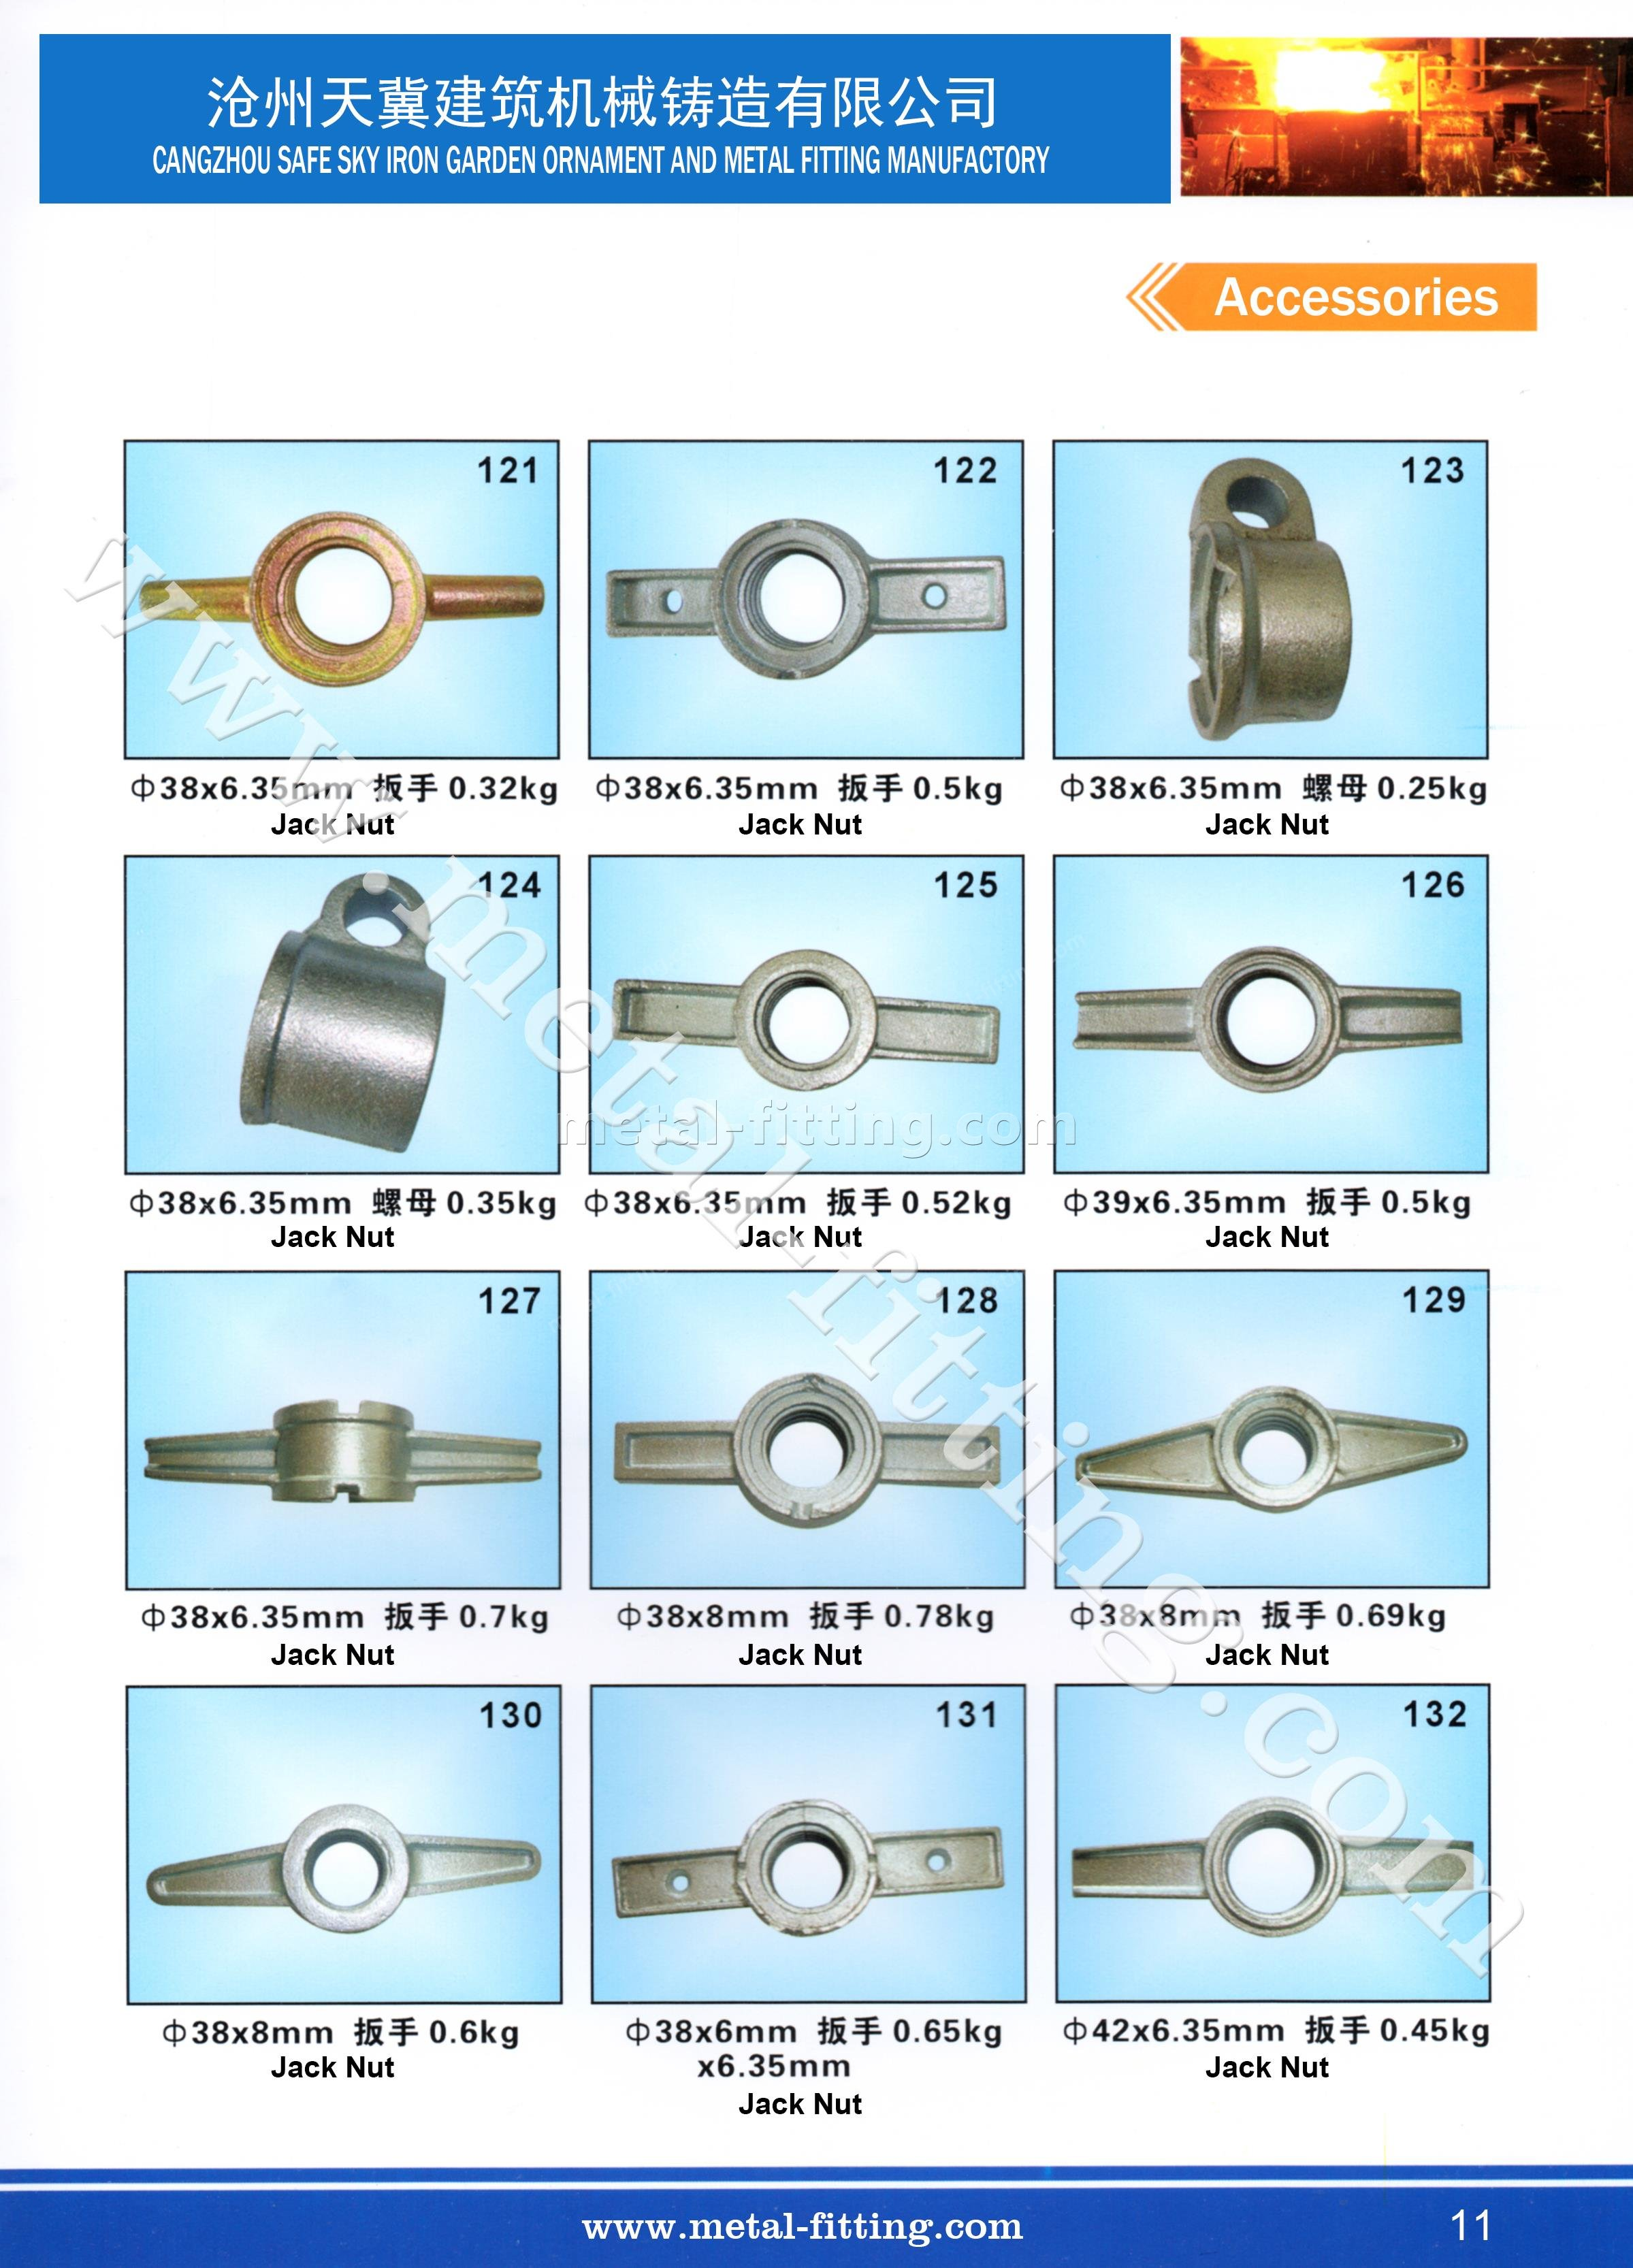 casting steel metal fitting, scaffolding system-11